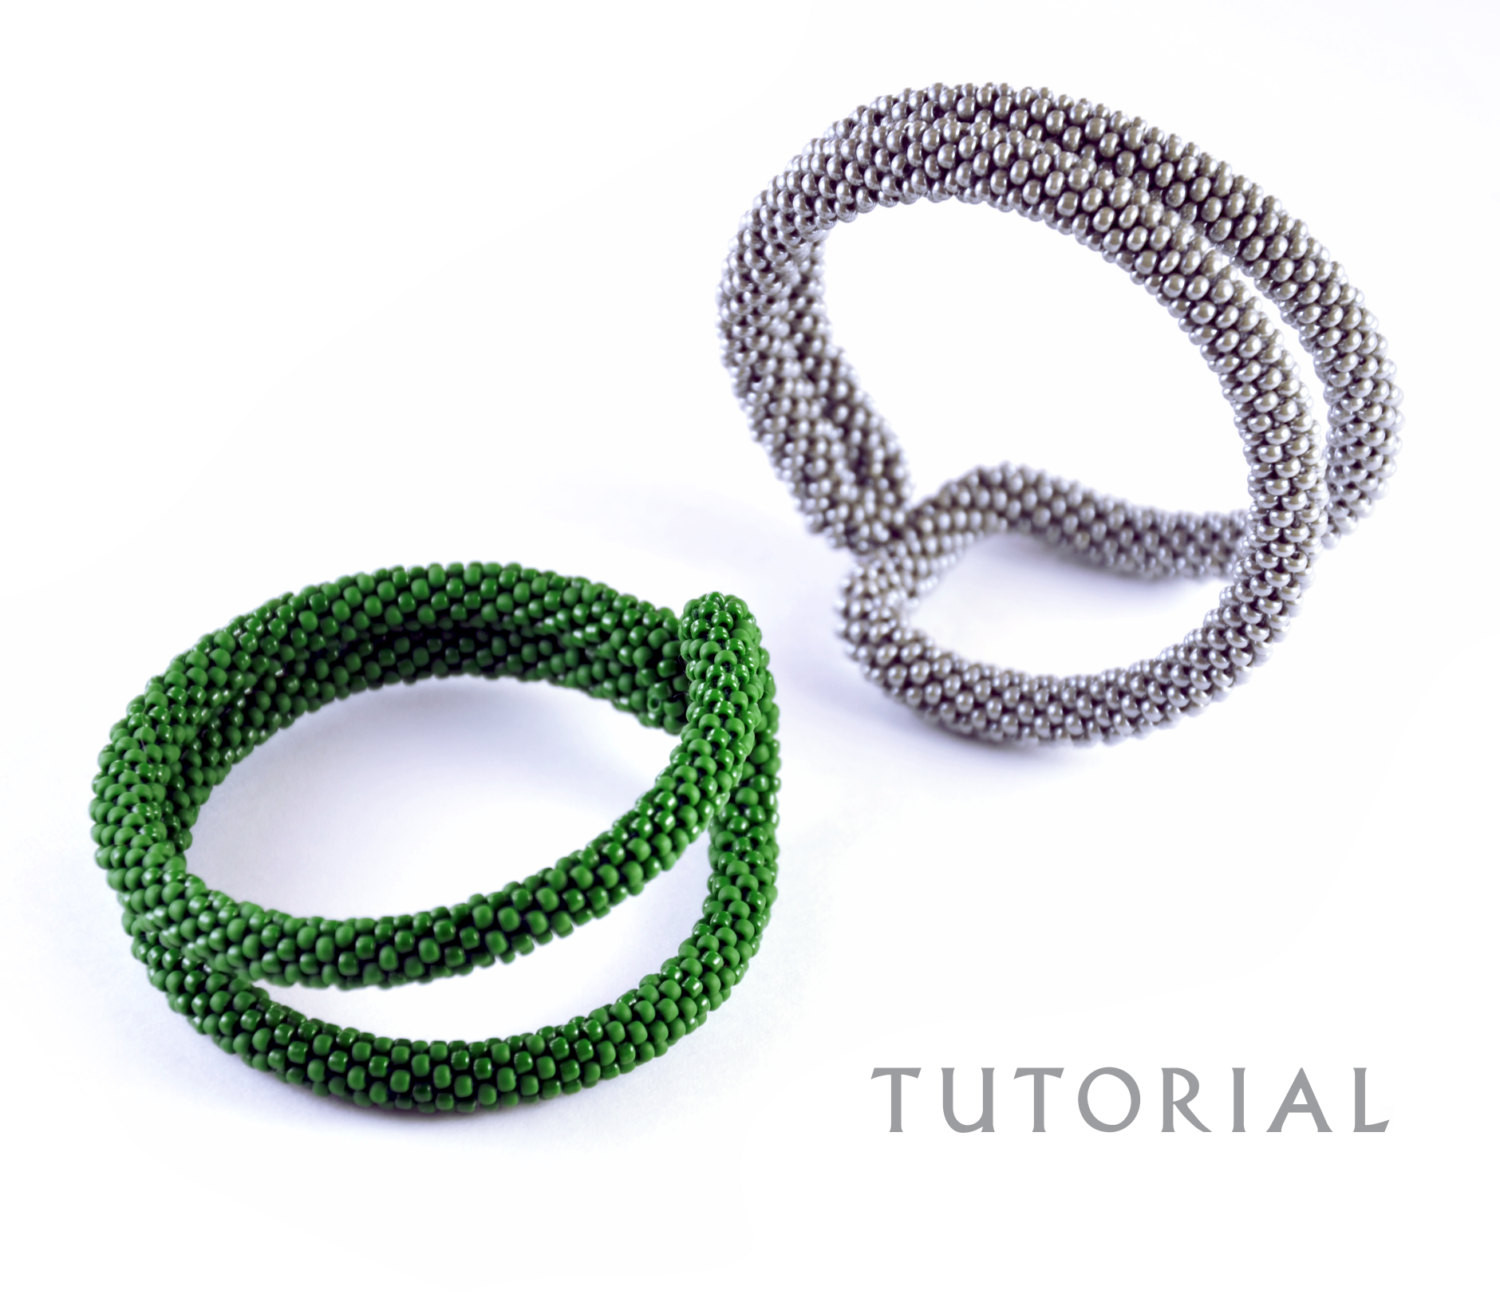 Bead Crochet Rope Awesome Seed Bead Bracelet Tutorial Crochet Rope Pattern Beading Cuff Of Attractive 50 Images Bead Crochet Rope